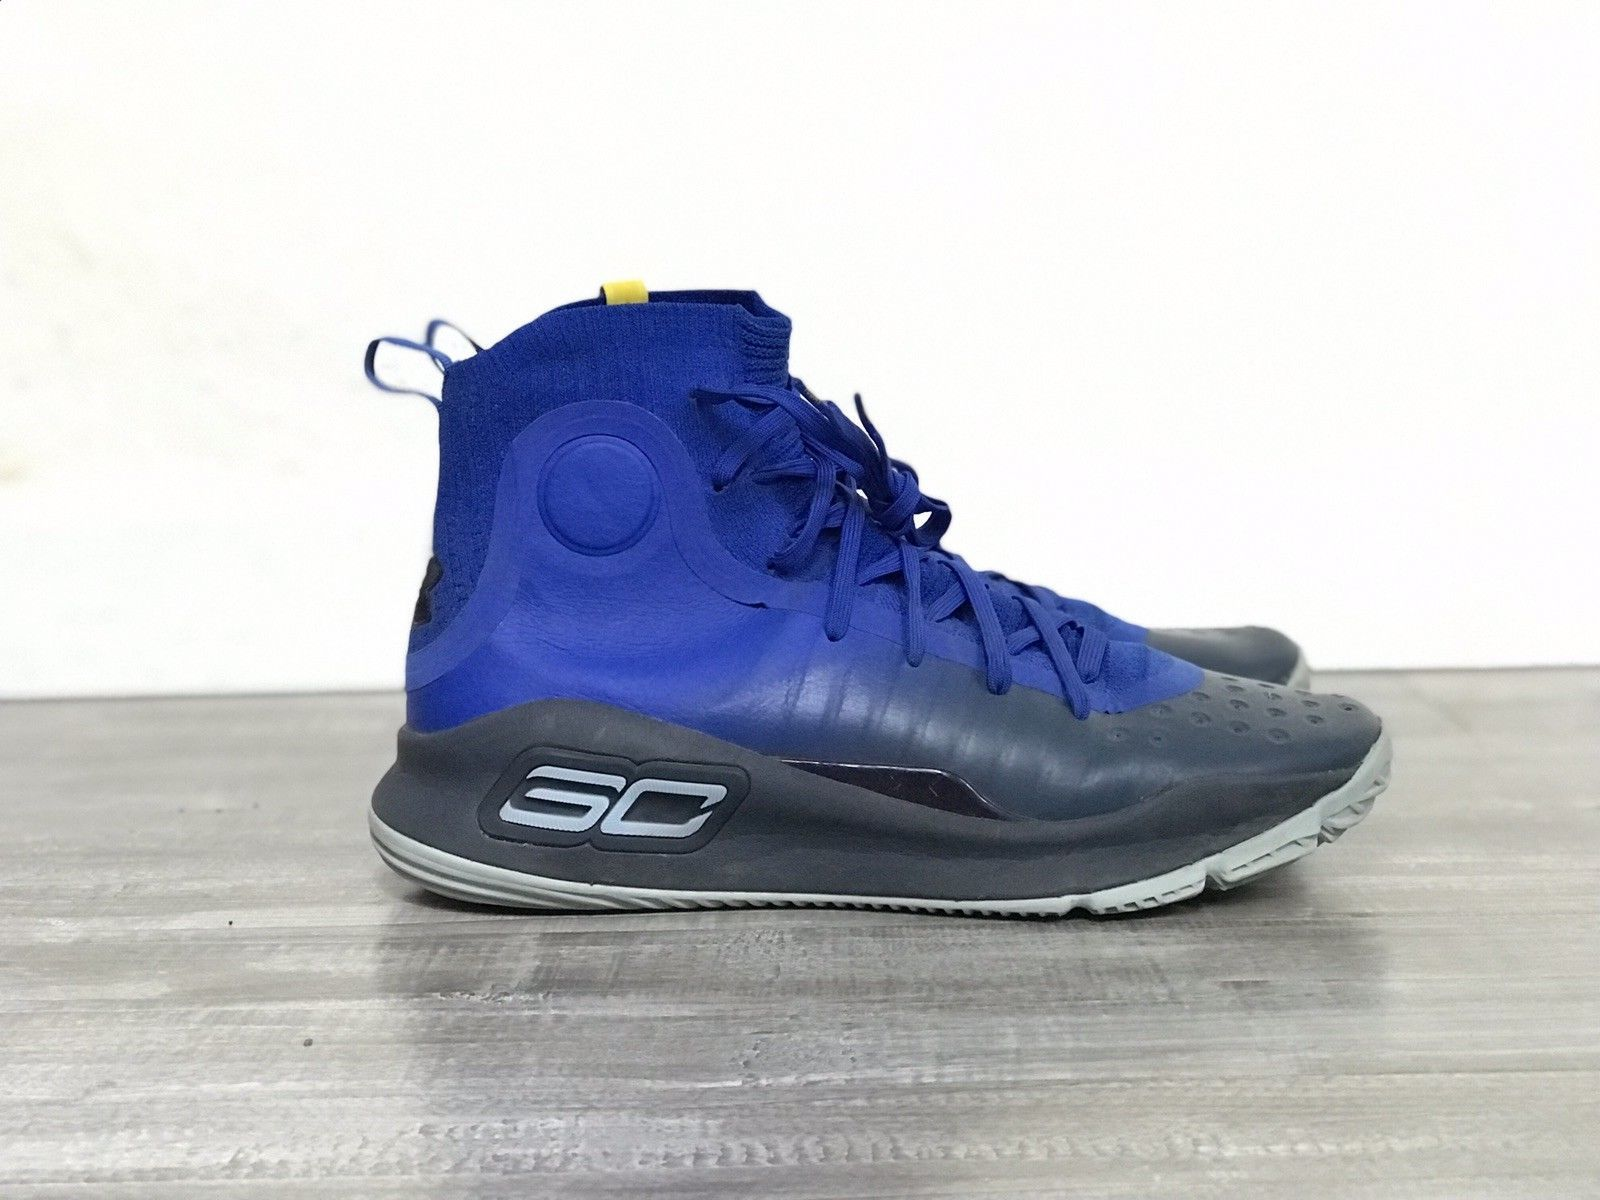 59fc2ed2cf46 Under Armour Stephen Curry 4 sz 9 Royal Blue Basketball 1298306 401 MORE  FUN - Curry 4 Shoes - Latest Curry 4 Shoes -  curry  curryshoes   curry30shoes - 7 ...